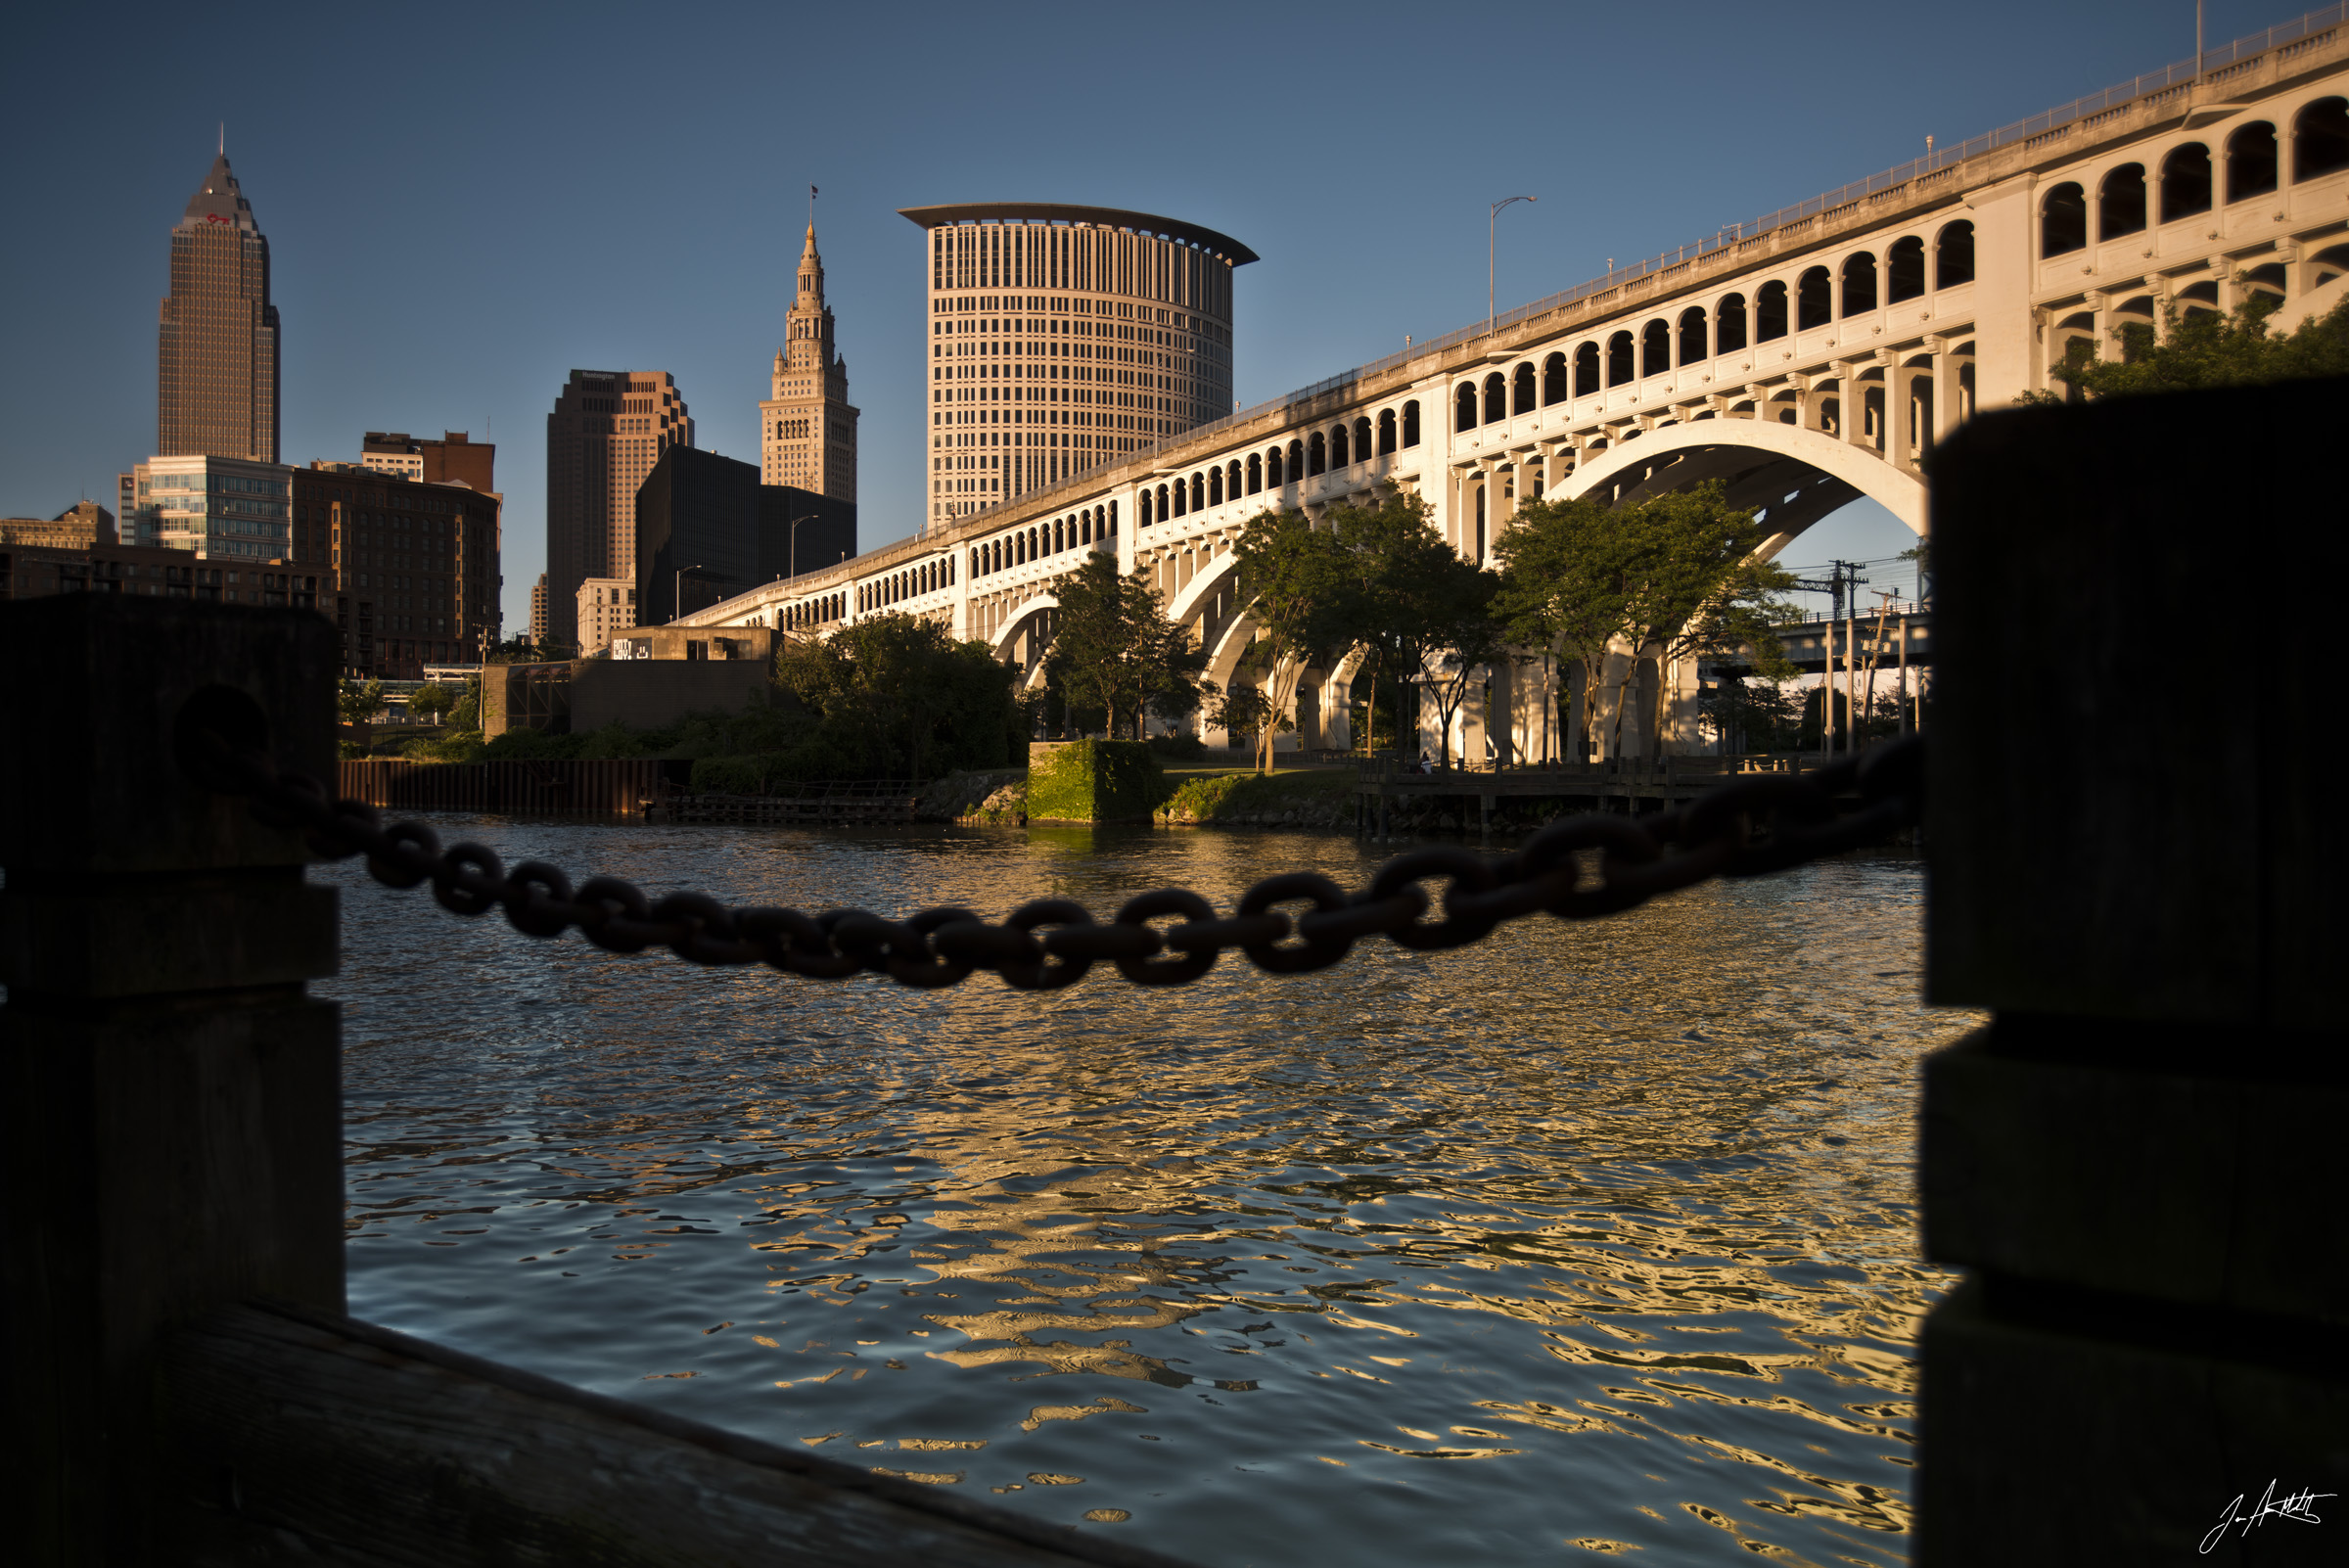 Day191_Cleveland Behind the chains_July10 small.jpg